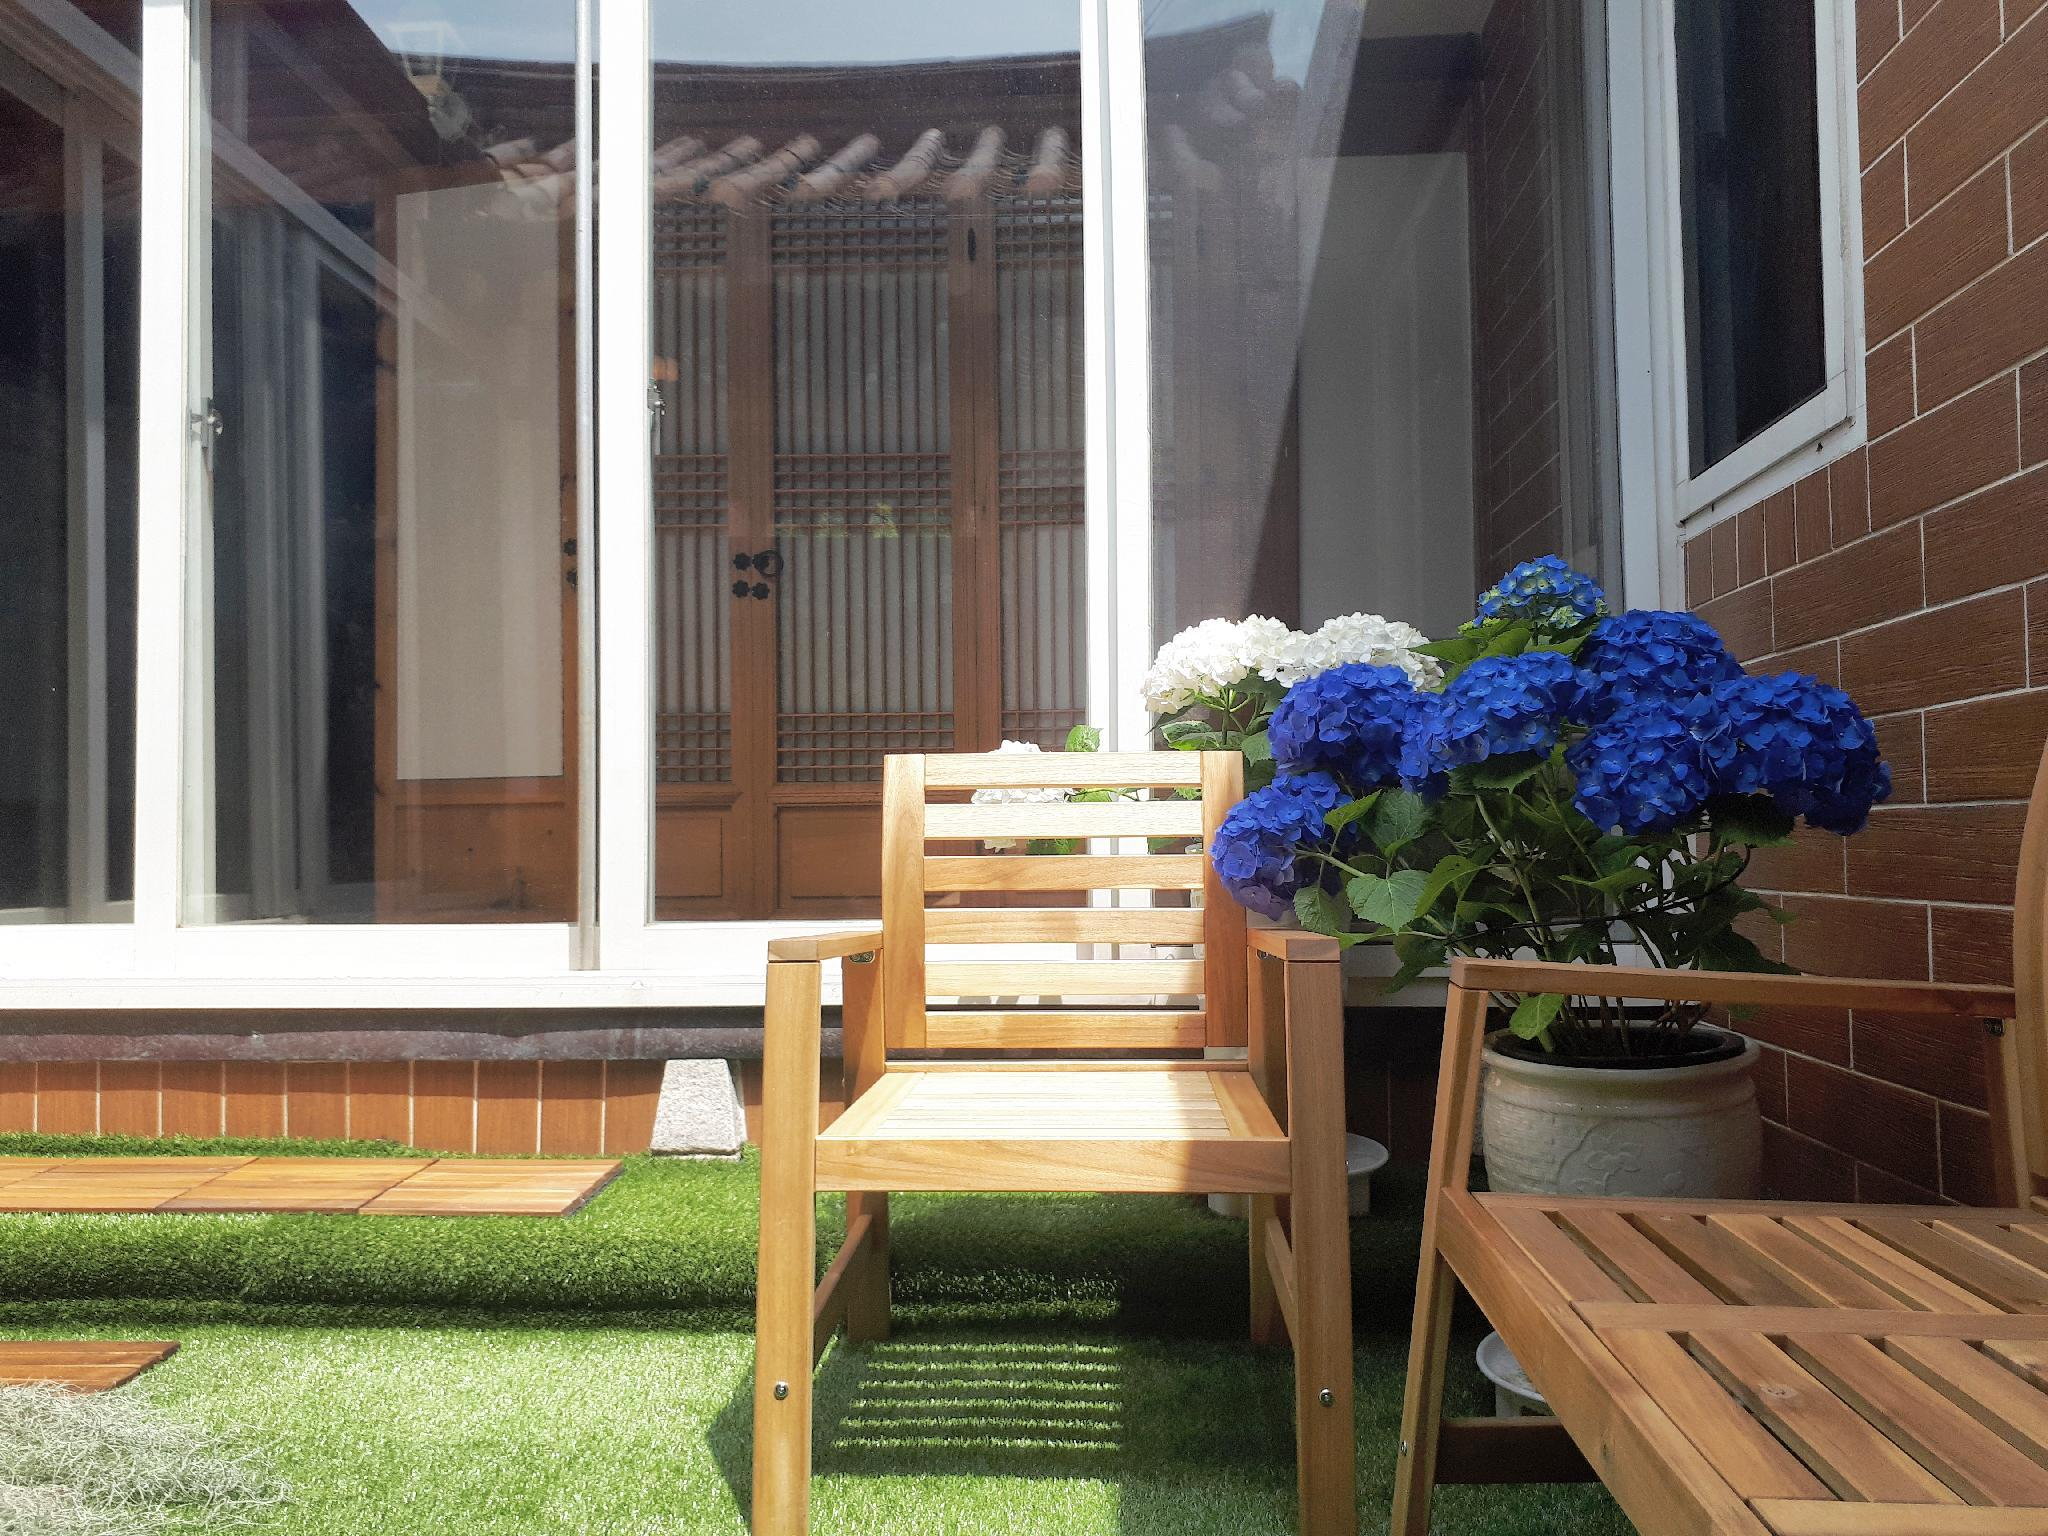 seoulstory hanok guesthouse Reviews